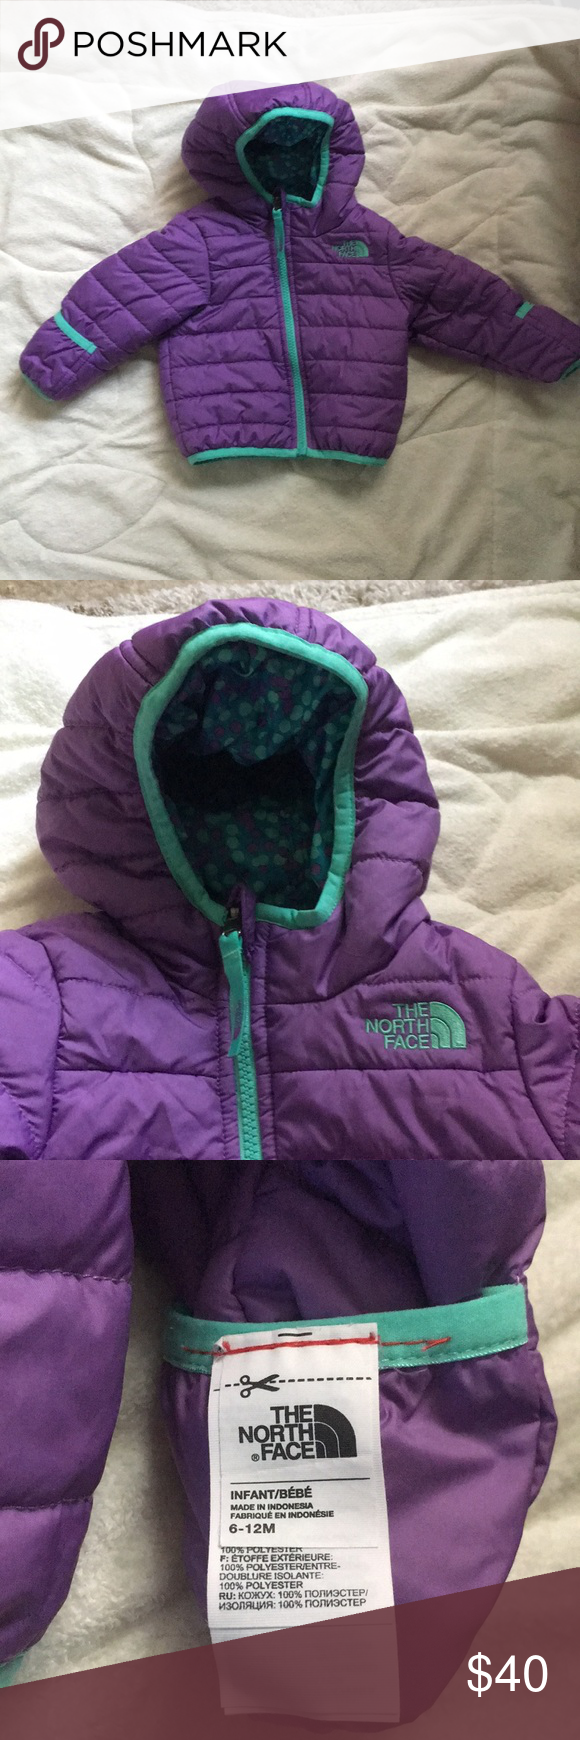 Baby North Face Coat North Face Coat The North Face North Face Jacket [ 1740 x 580 Pixel ]